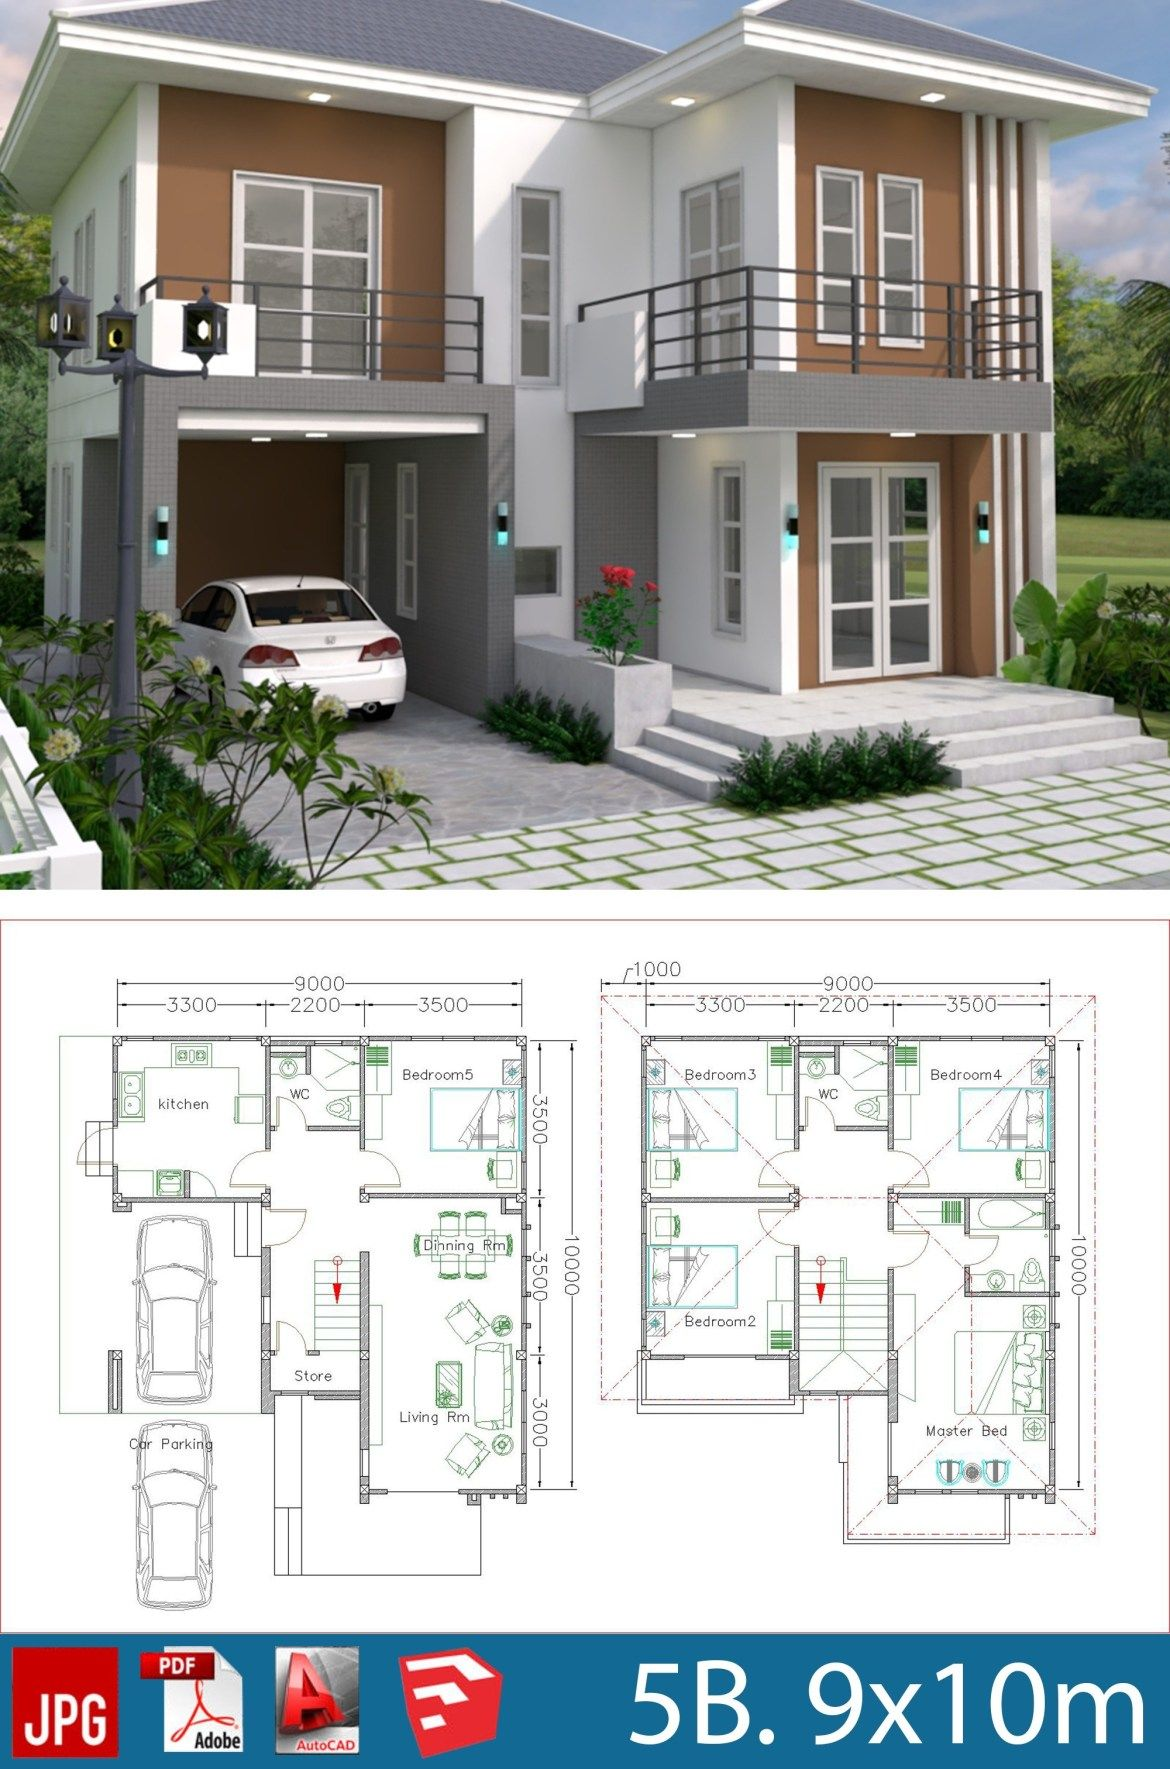 House Plans Design 9x10m With 5 Bedrooms Samphoas Plansearch Duplex House Plans Model House Plan Duplex House Design